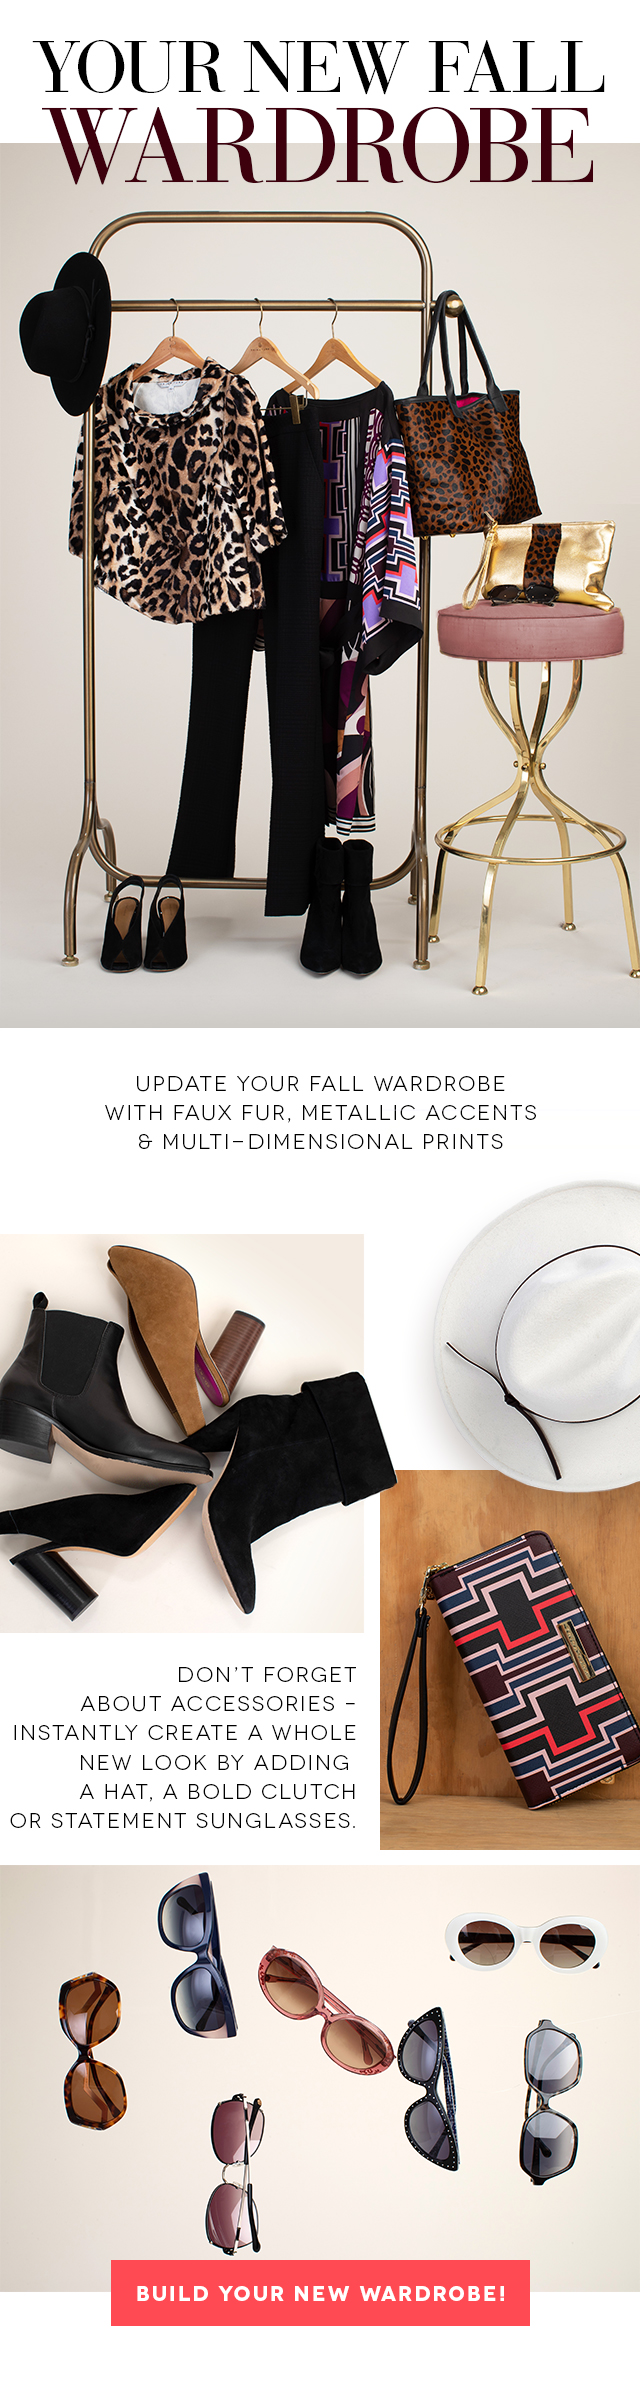 Your New Fall Wardrobe   Update with faux fur, metallic accents & multi-dimensional prints.   Build Your New Wardrobe >